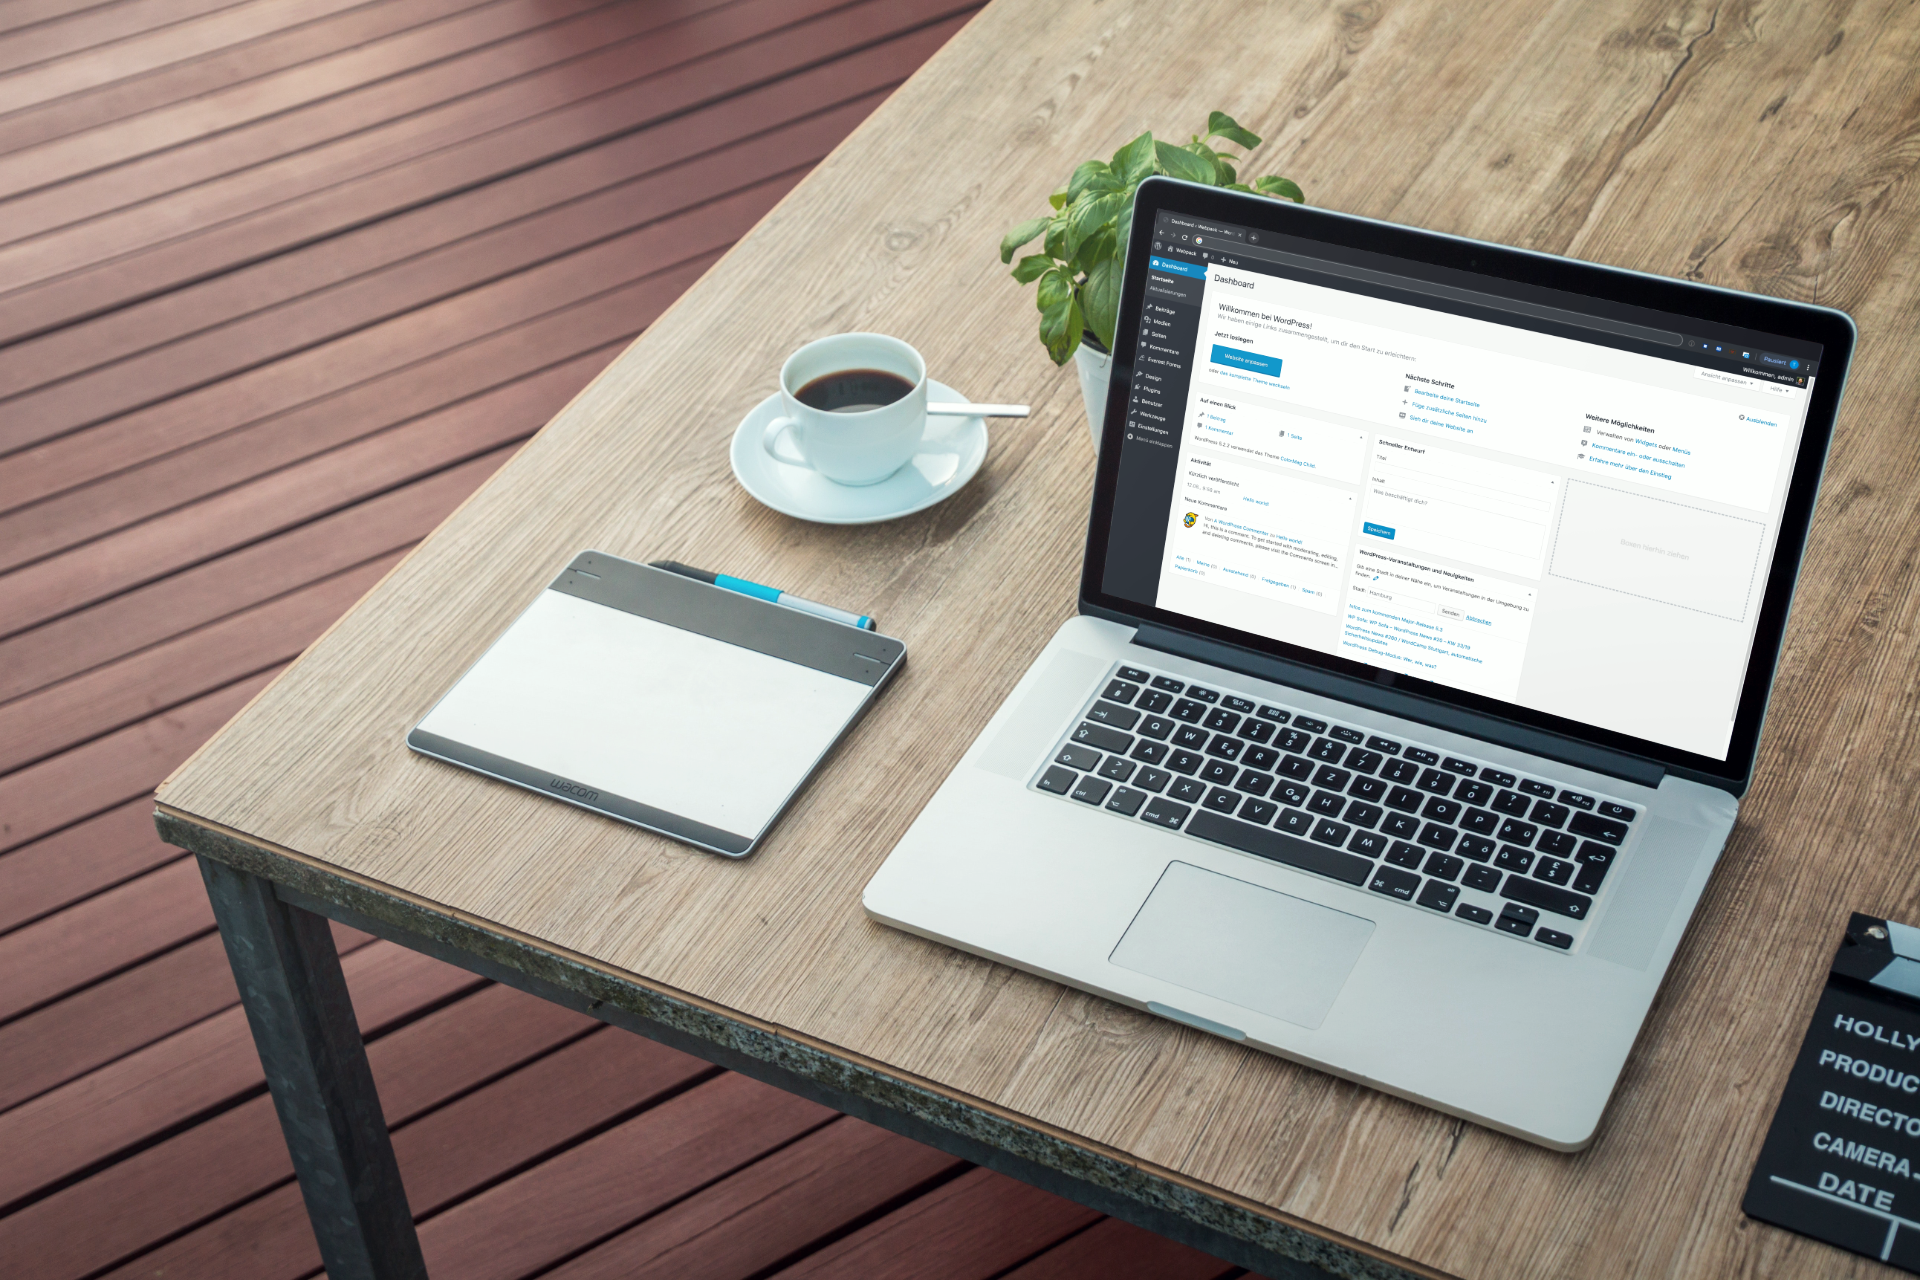 WordPress-Backend auf einem MacBook